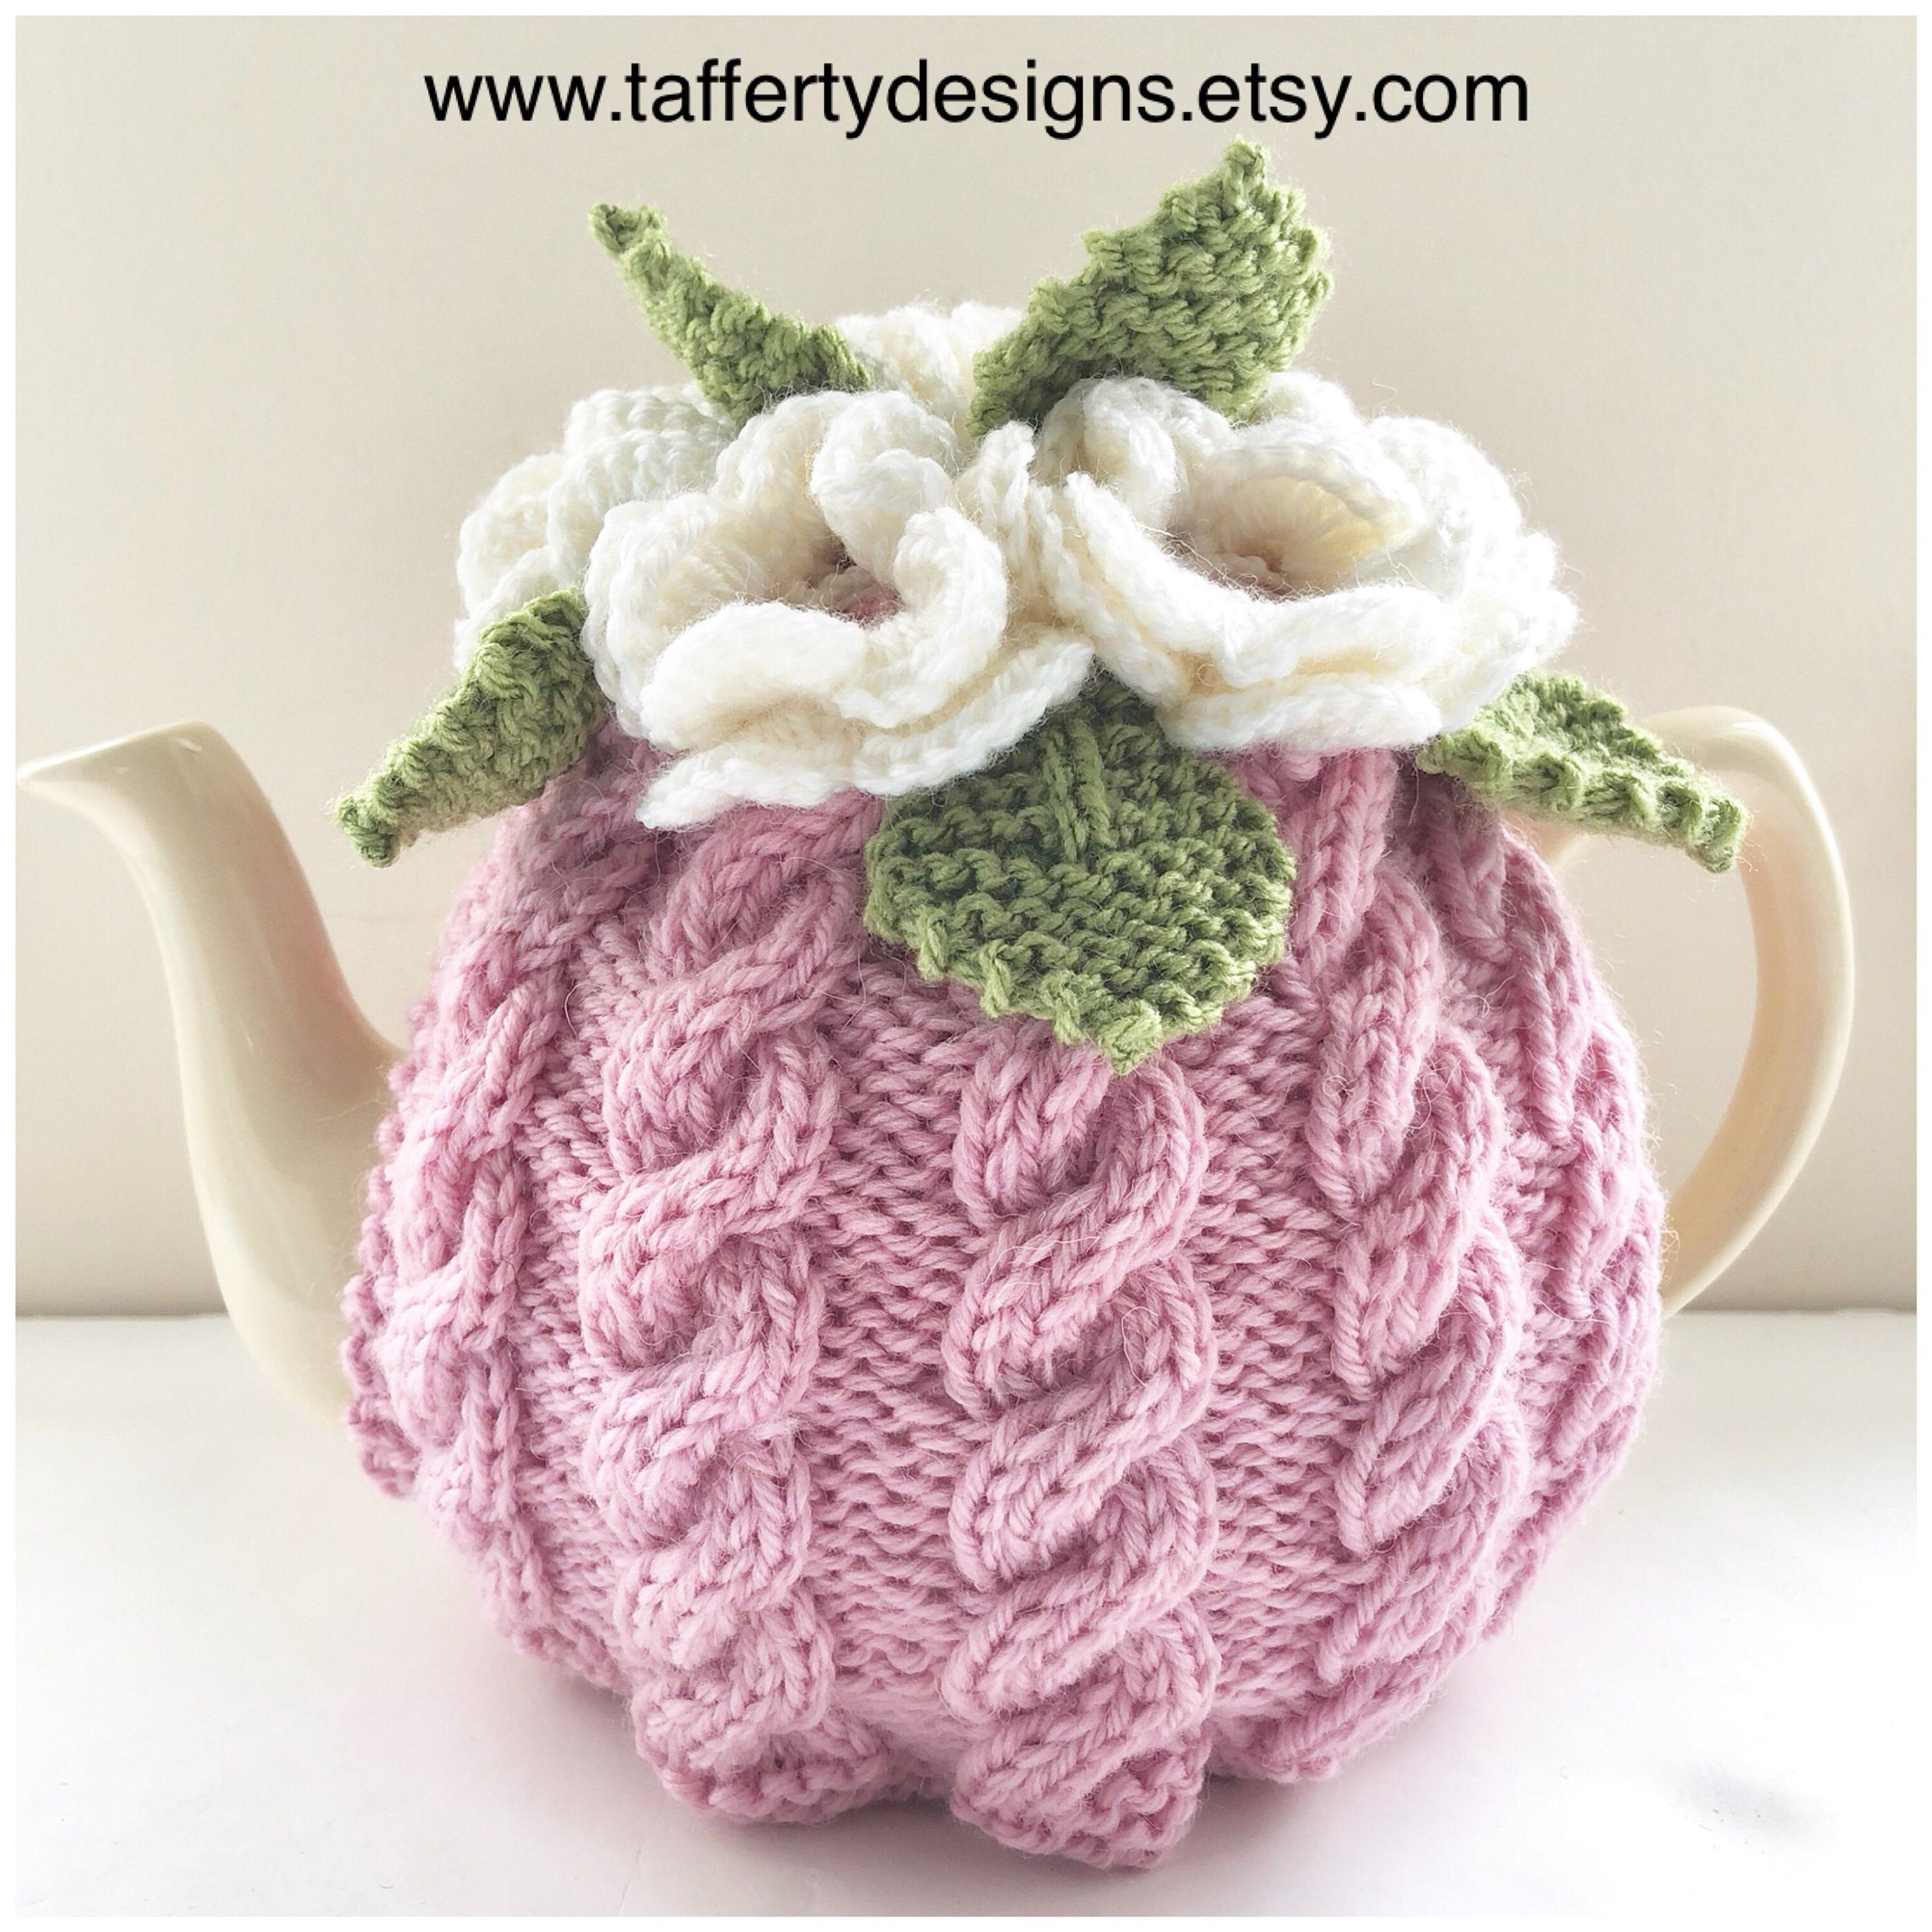 Floral Cabled Tea Cosy in Pure Wool - Pink & White - Size ...